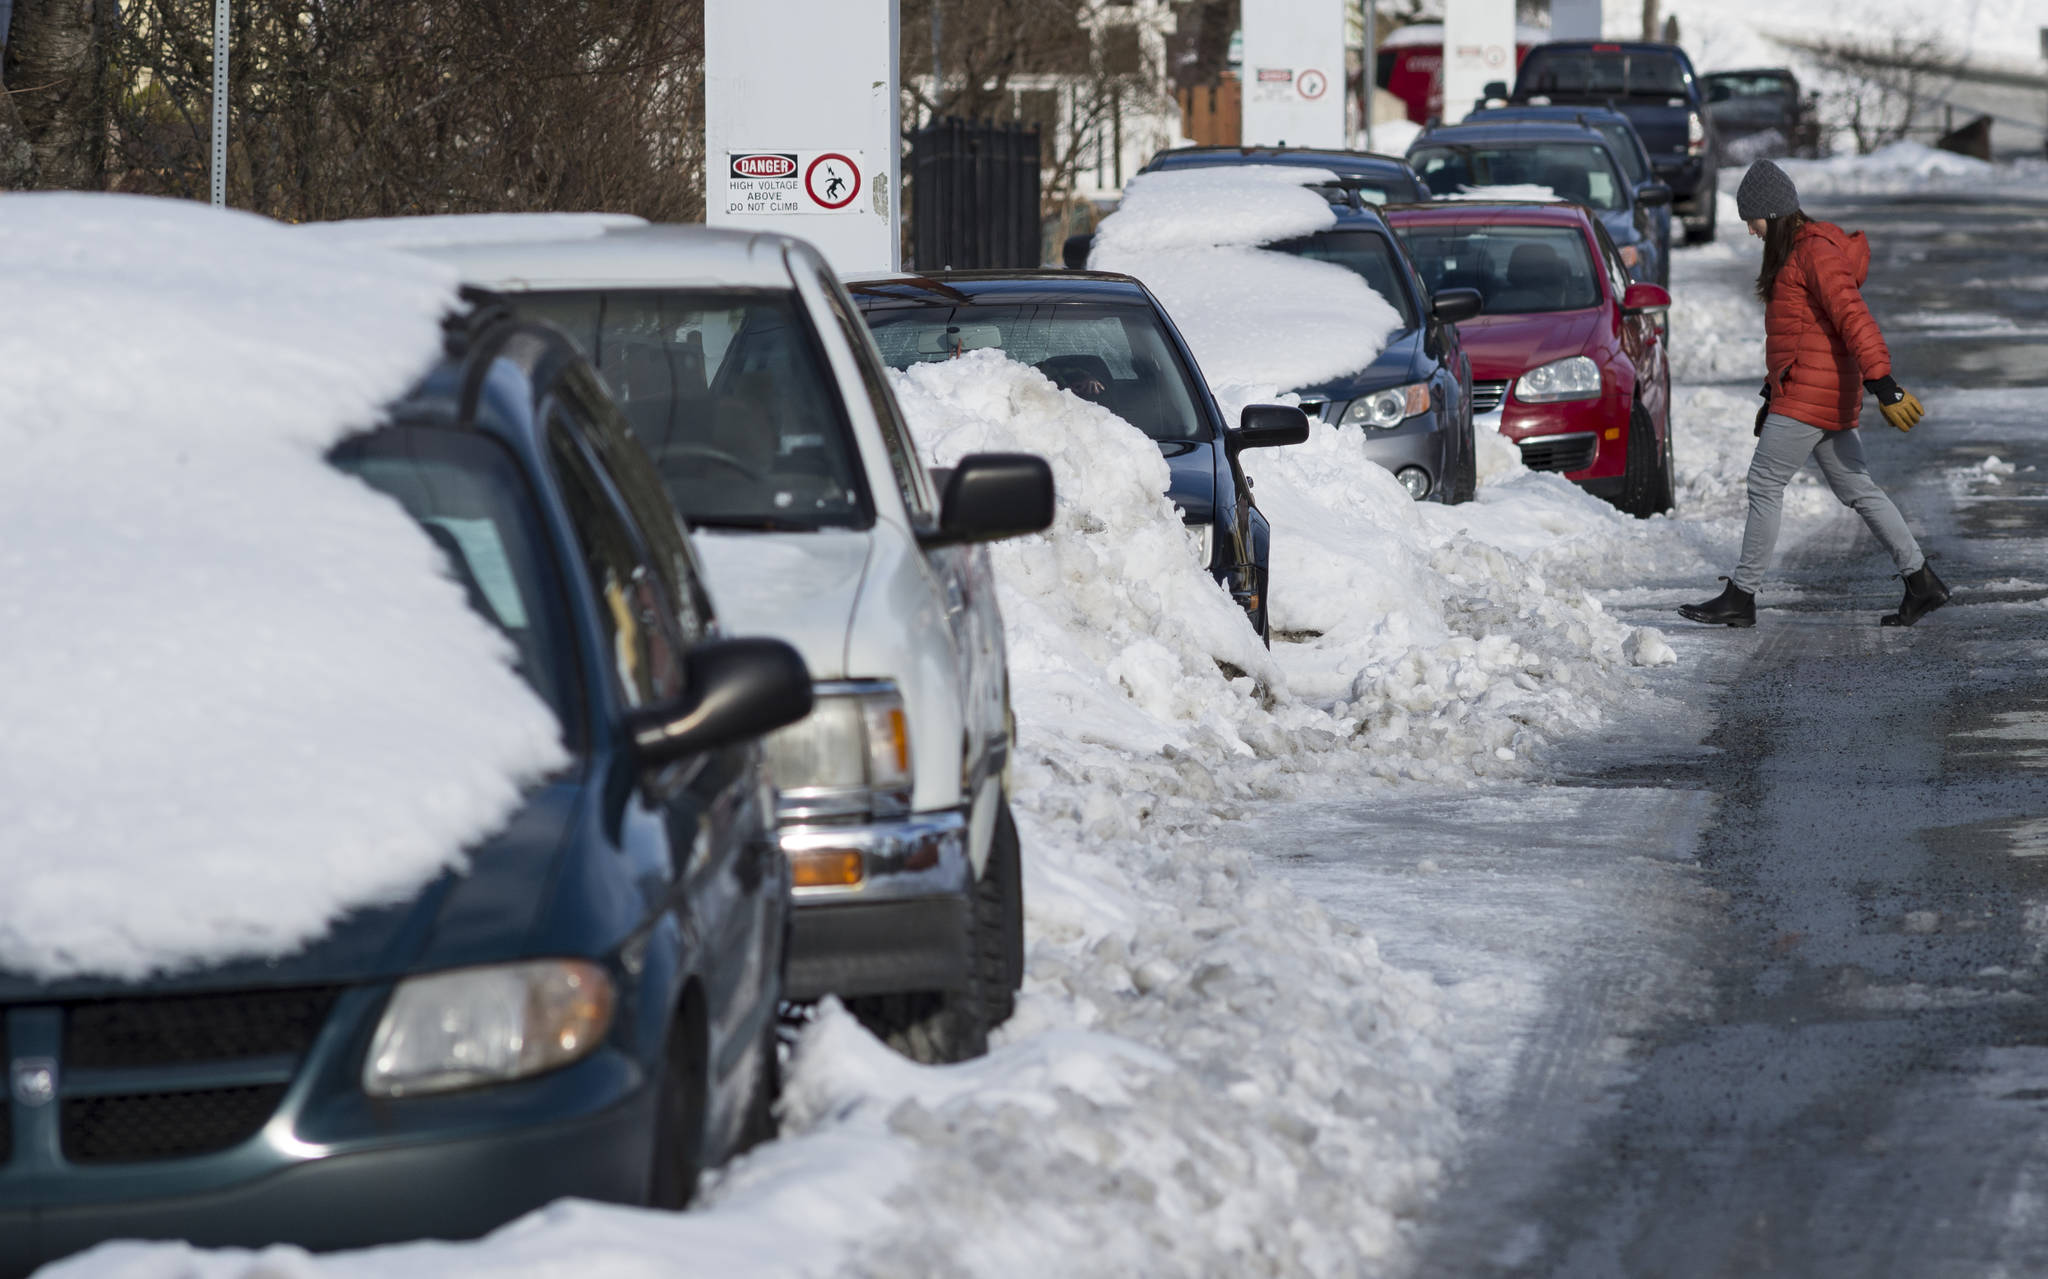 Parked vehicles and piles of snow line 11th Street on Thursday, March 1, 2018. February was cold and the forecast for March is for more of the same. (Michael Penn | Juneau Empire)